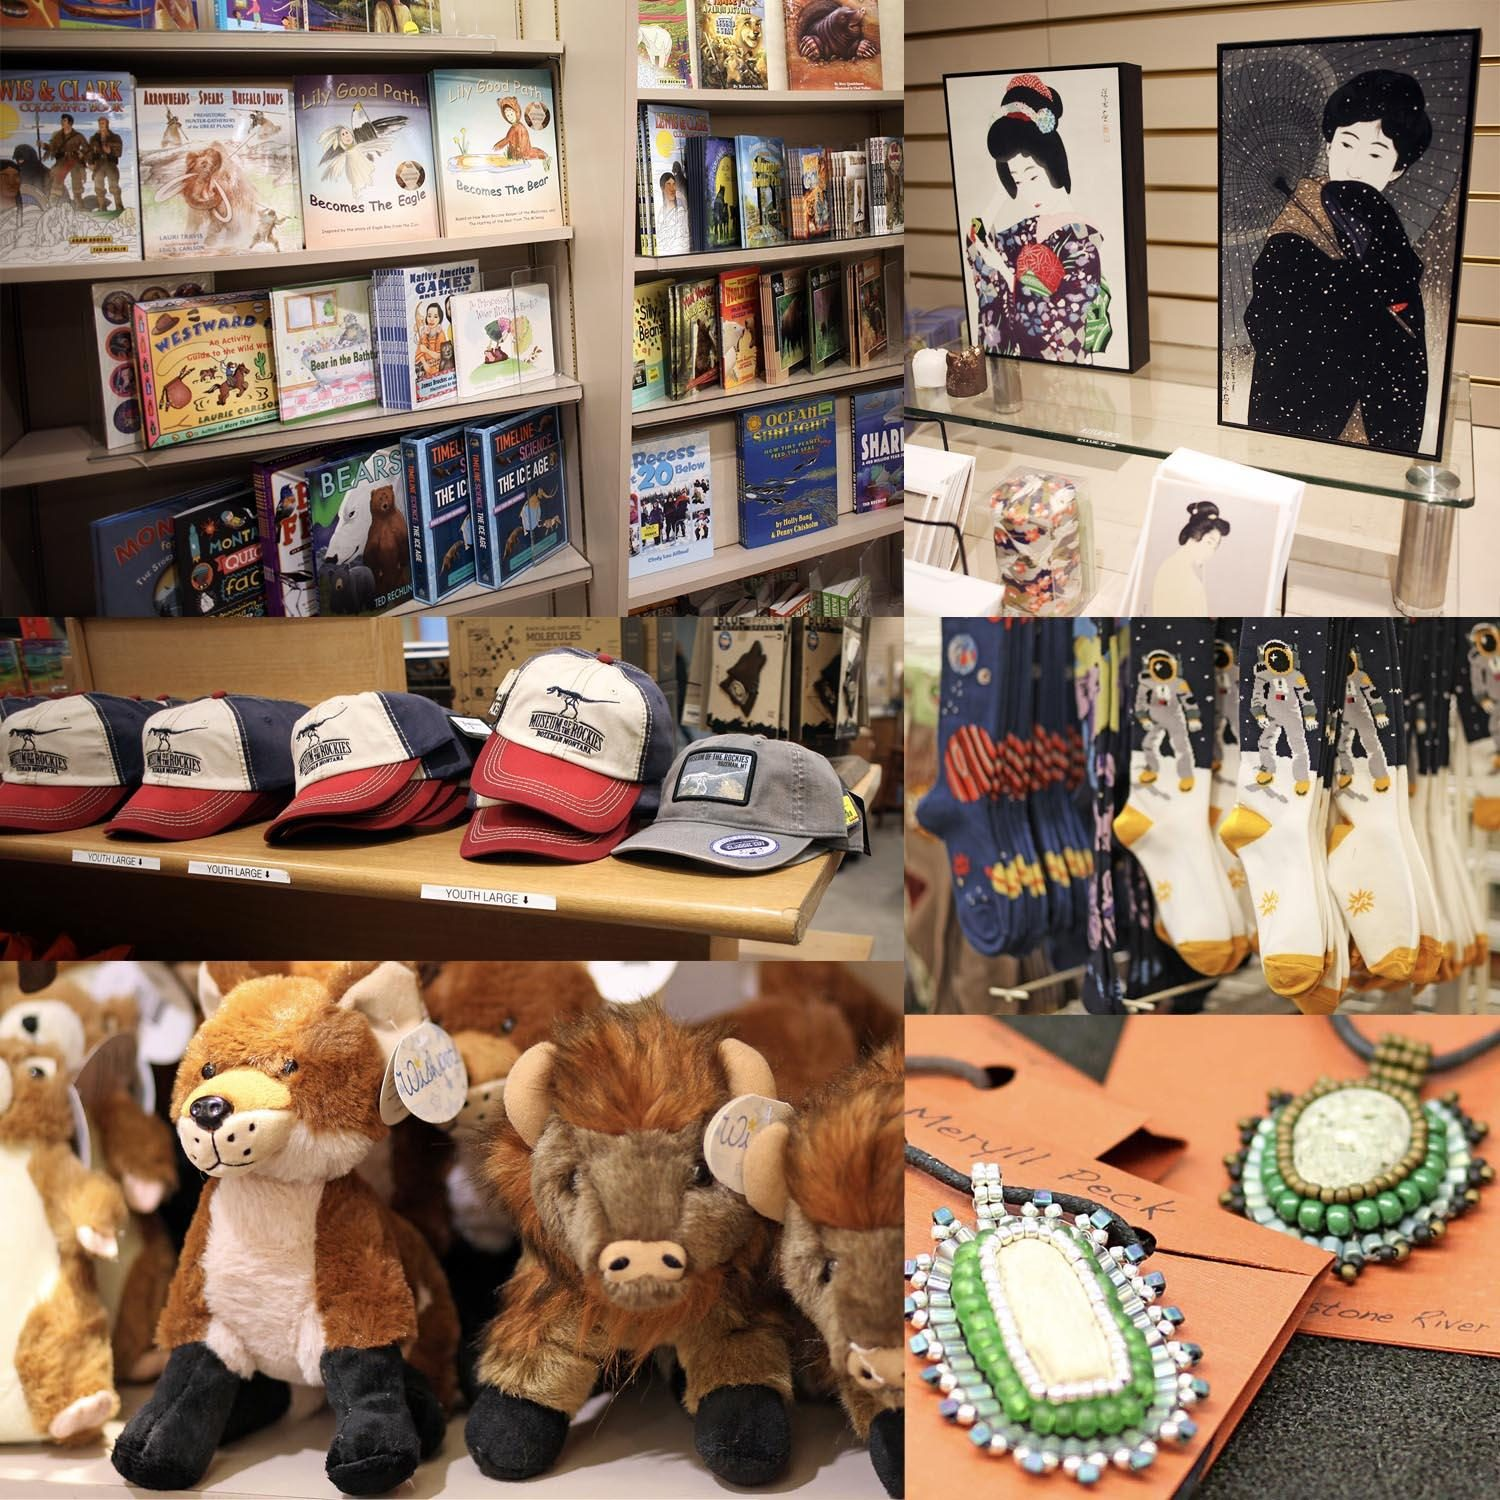 A collage of items available for purchase in the Museum Store such as books, art, plush toys, & jewelry.